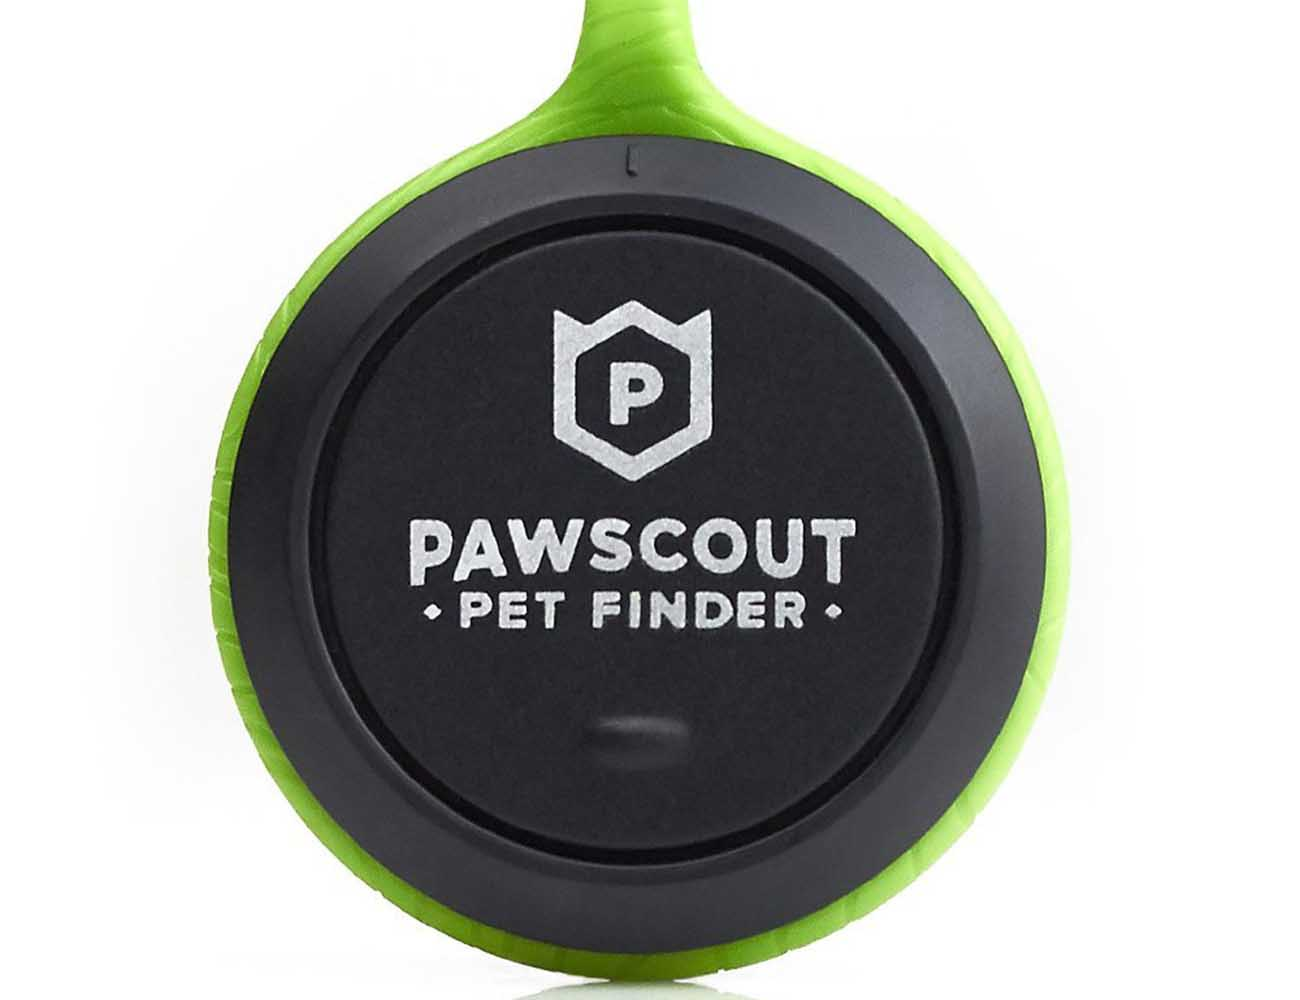 Pawscout – Social GPS Pet Tracker